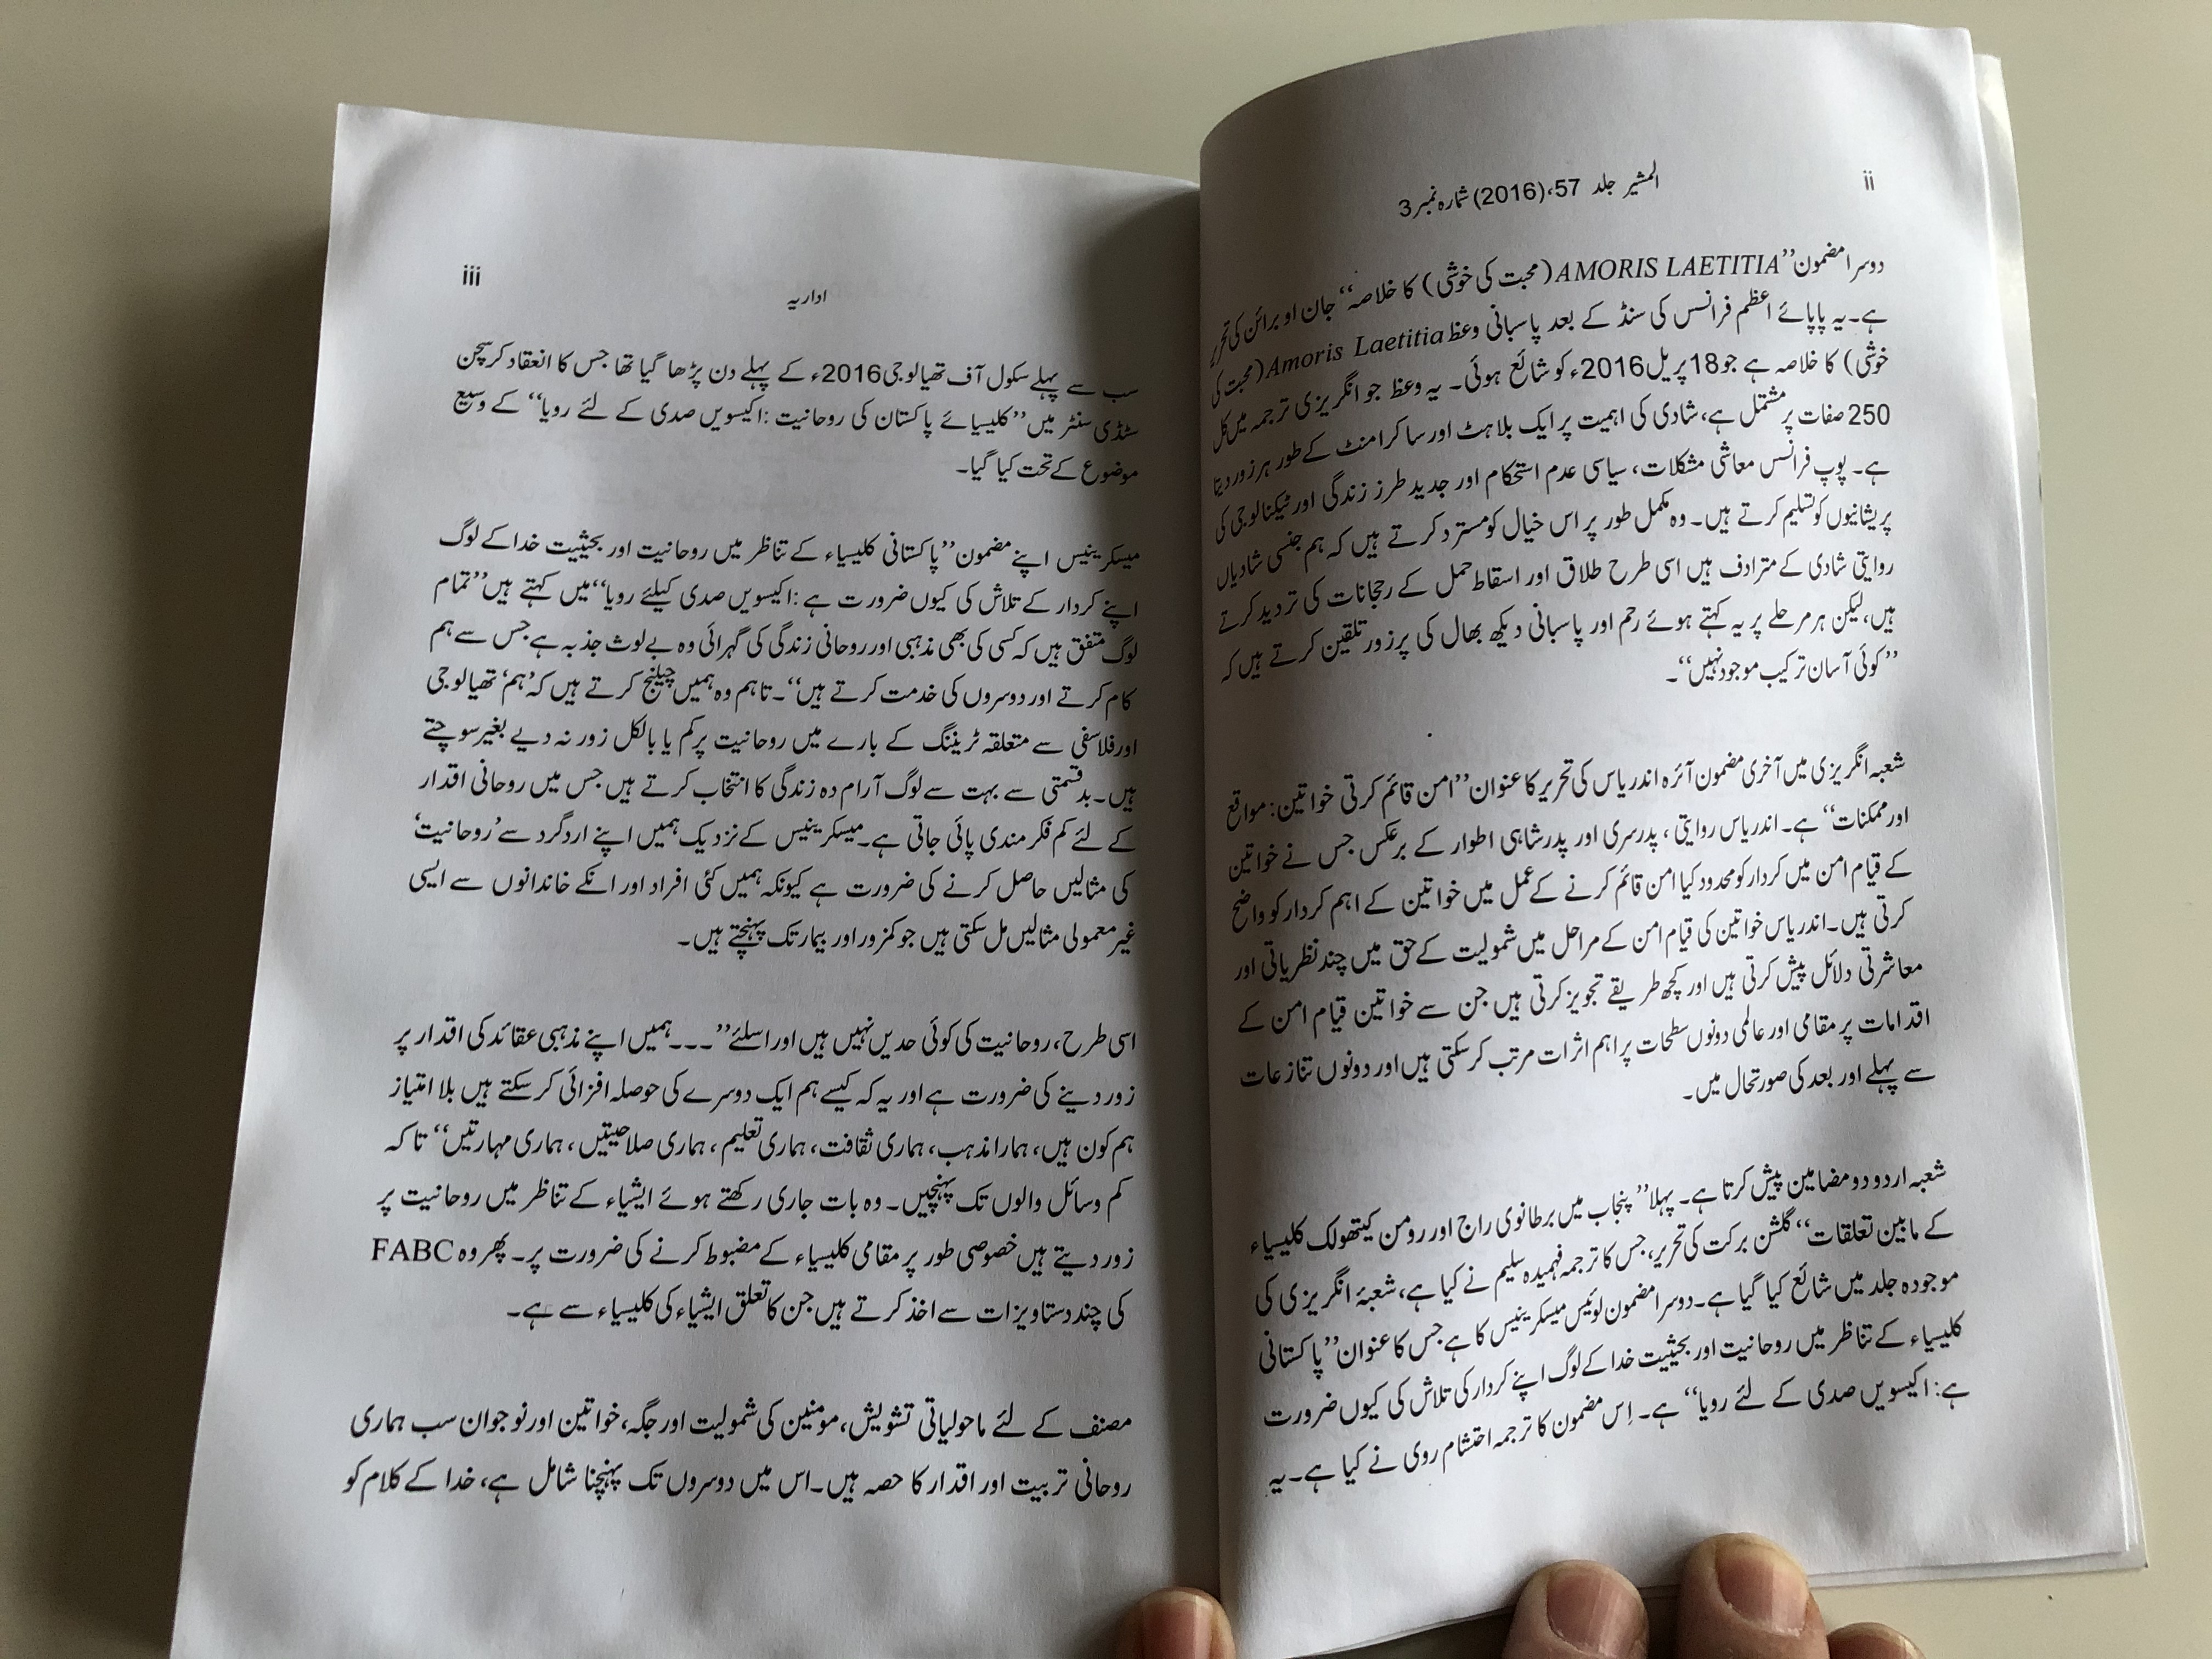 al-mushir-the-counselor-theological-journal-of-the-christian-study-centre-in-rawalpindi-14.jpg